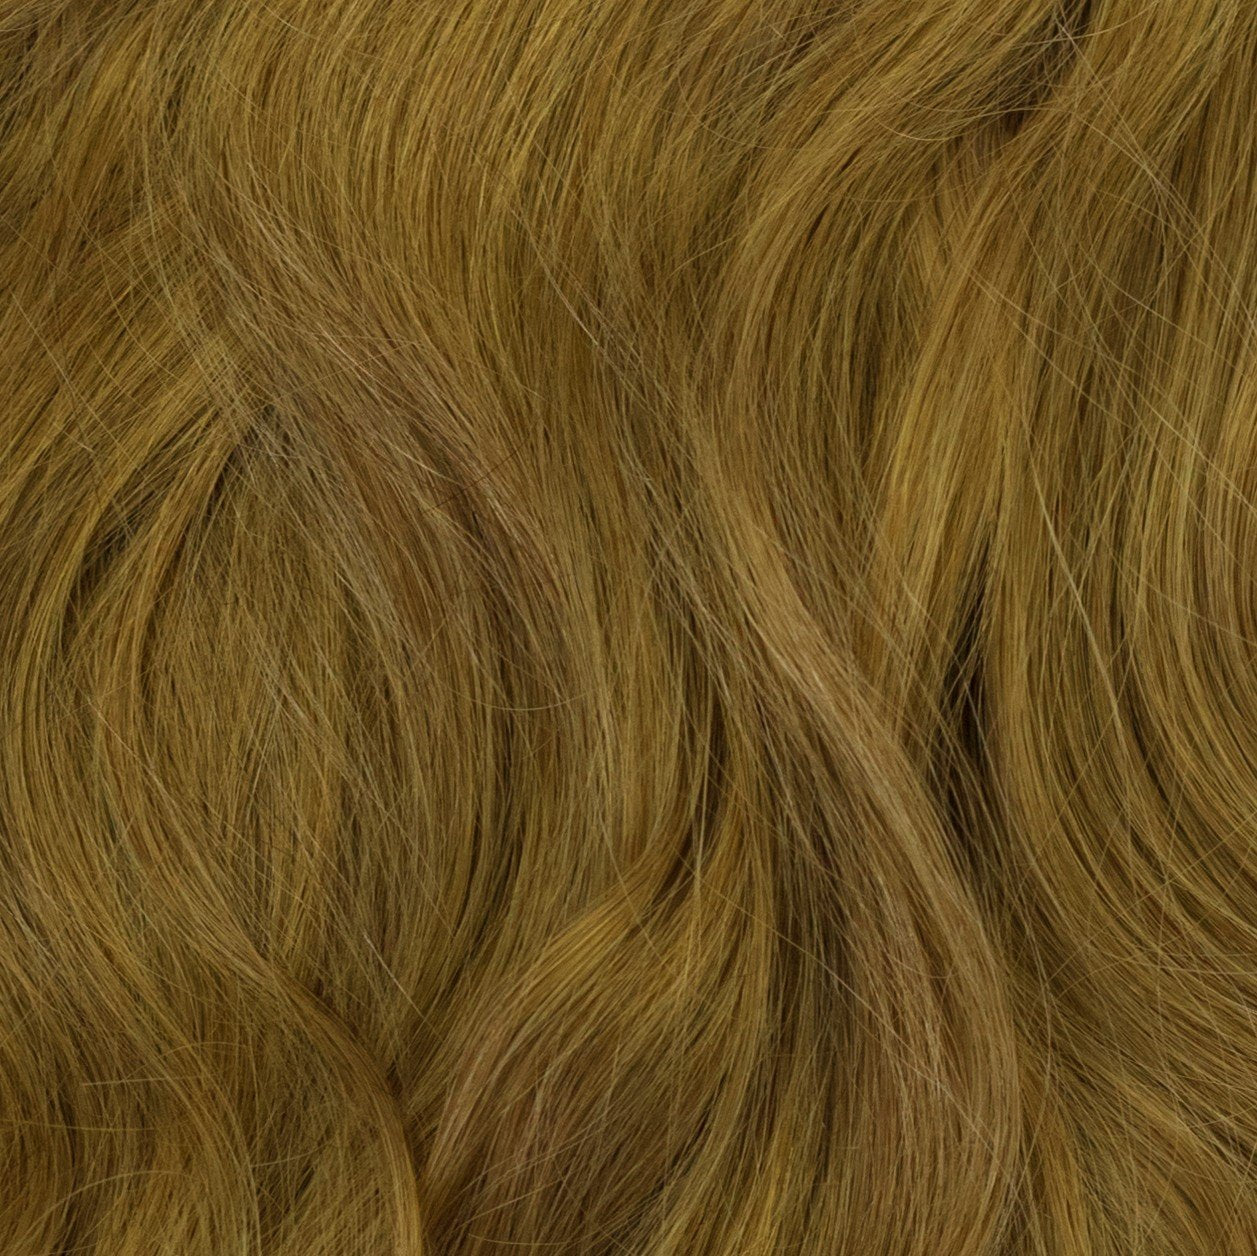 20 180 Grams Almond Blonde Clip In Hair Extensions Shaggy Loxx